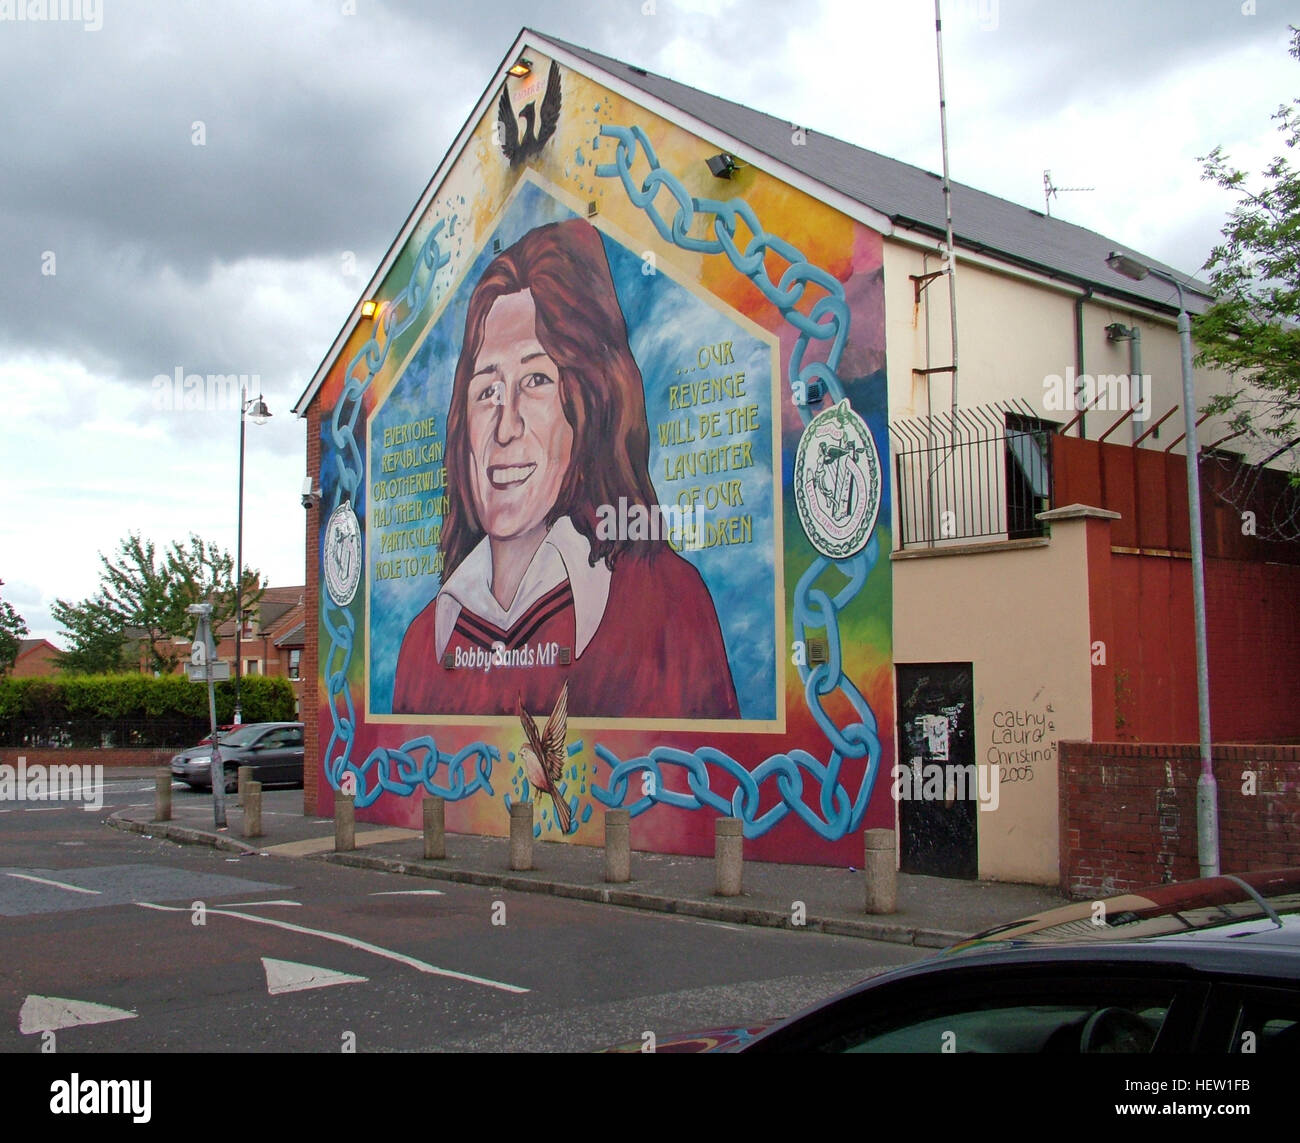 Road,painting,graffiti,resistance,IRA,peace,Northern Ireland,NI,UK,St,street,Eire,Irish,Republic,Irish Republic,conflict,Irish Republican Army,Political Change,Hblock,H-Block,Bobby Sands MP,Bobby Sands,hero,heroes,GoTonySmith,@HotpixUK,Tony,Smith,UK,GB,Great,Britain,United,Kingdom,Irish,British,Ireland,problem,with,problem with,issue with,NI,Northern,Northern Ireland,Belfast,City,Centre,Art,Artists,the,troubles,The Troubles,Good Friday Agreement,Peace,honour,painting,wall,walls,tribute,republicanism,Fight,Justice,West,Beal,feirste,martyrs,social,tour,tourism,tourists,urban,six,counties,6,backdrop,county,Antrim,occupation,good,Friday,agreement,peace,reconciliation,IRA,terror,terrorists,genocide,Buy Pictures of,Buy Images Of,Images of,Stock Images,Tony Smith,United Kingdom,Great Britain,British Isles,republican cause